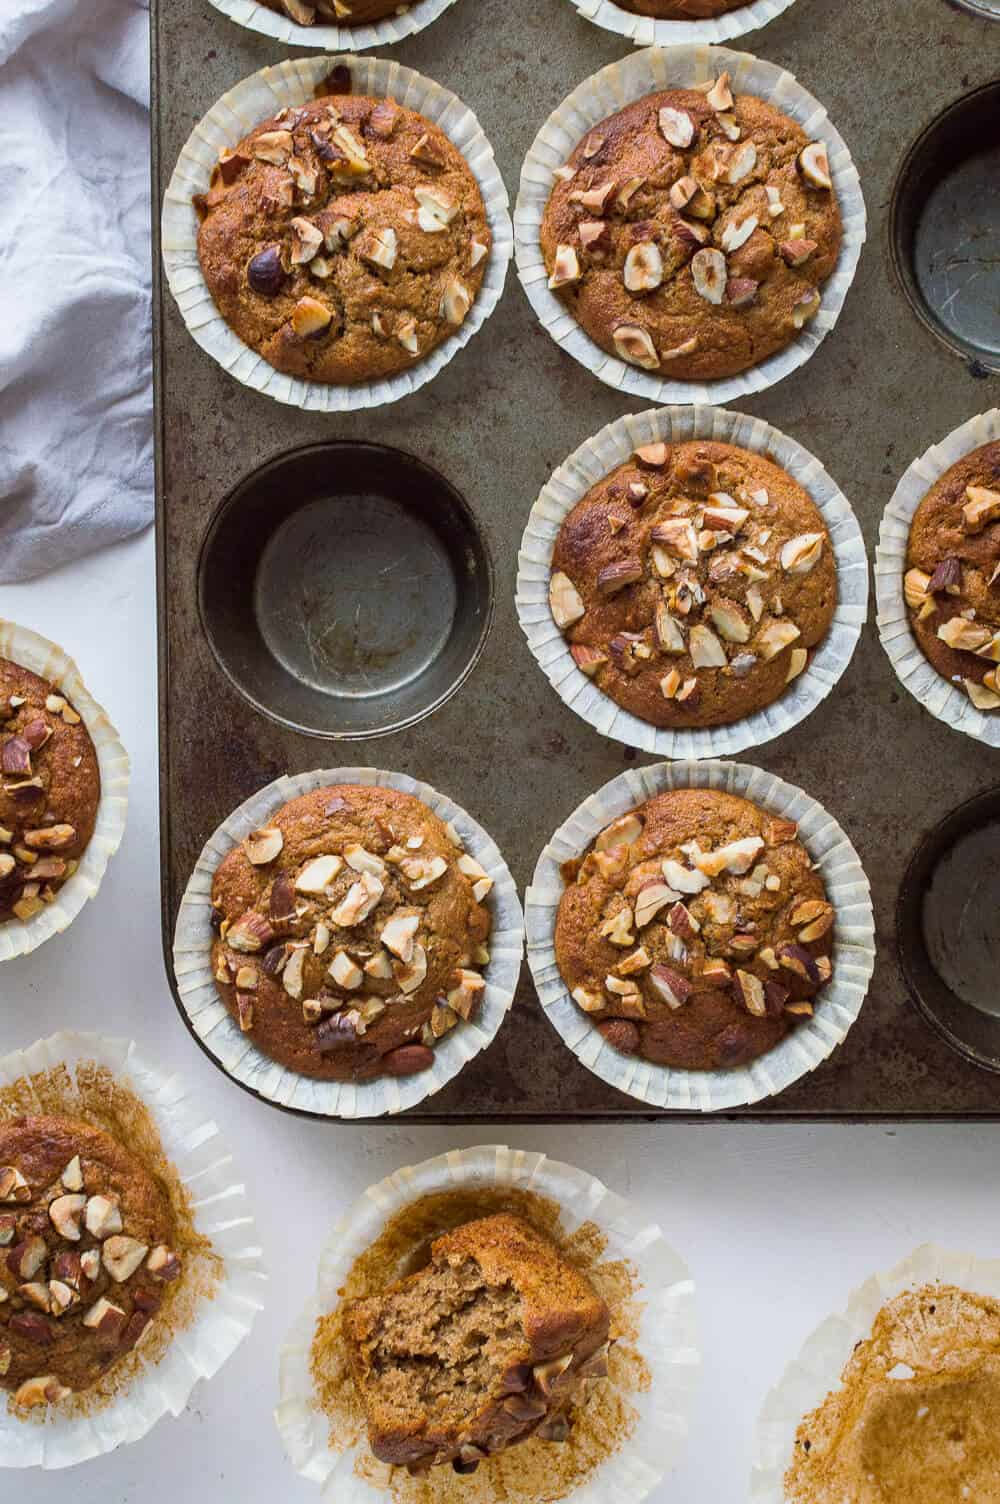 A tray of vegan banana nut muffins on a white background.